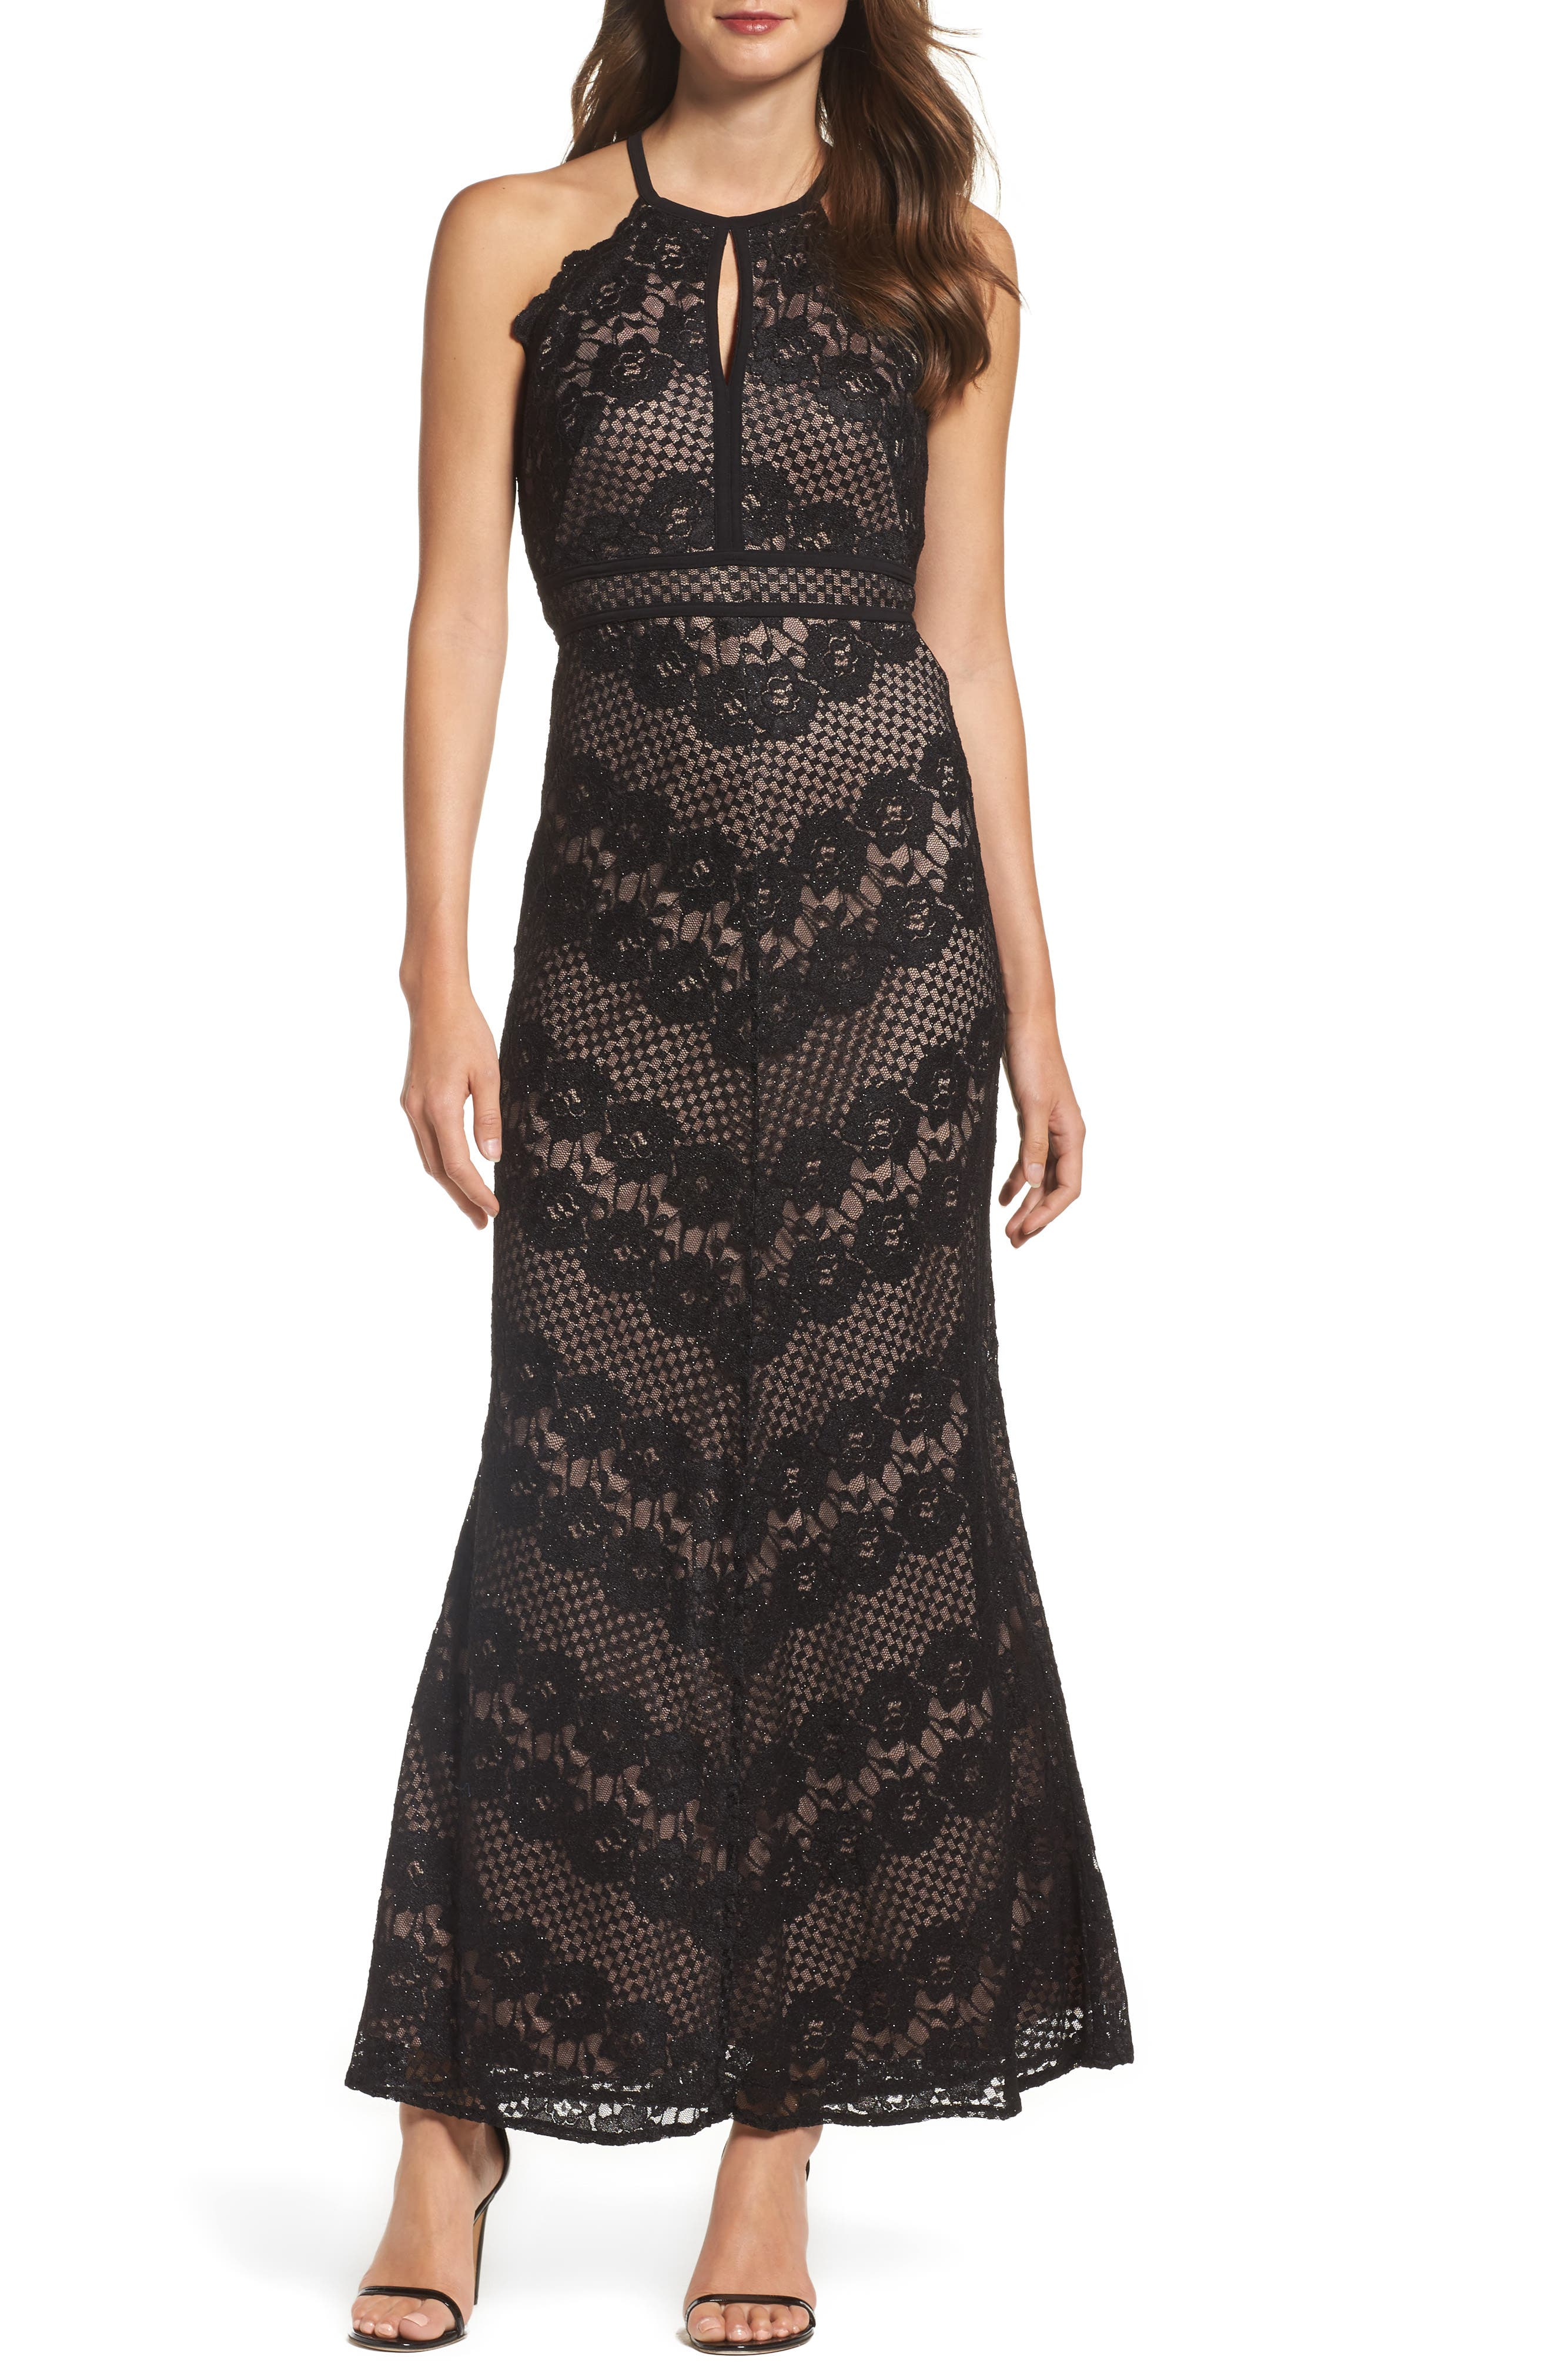 Morgan & Co. Crisscross Lace Gown, /2 - Black